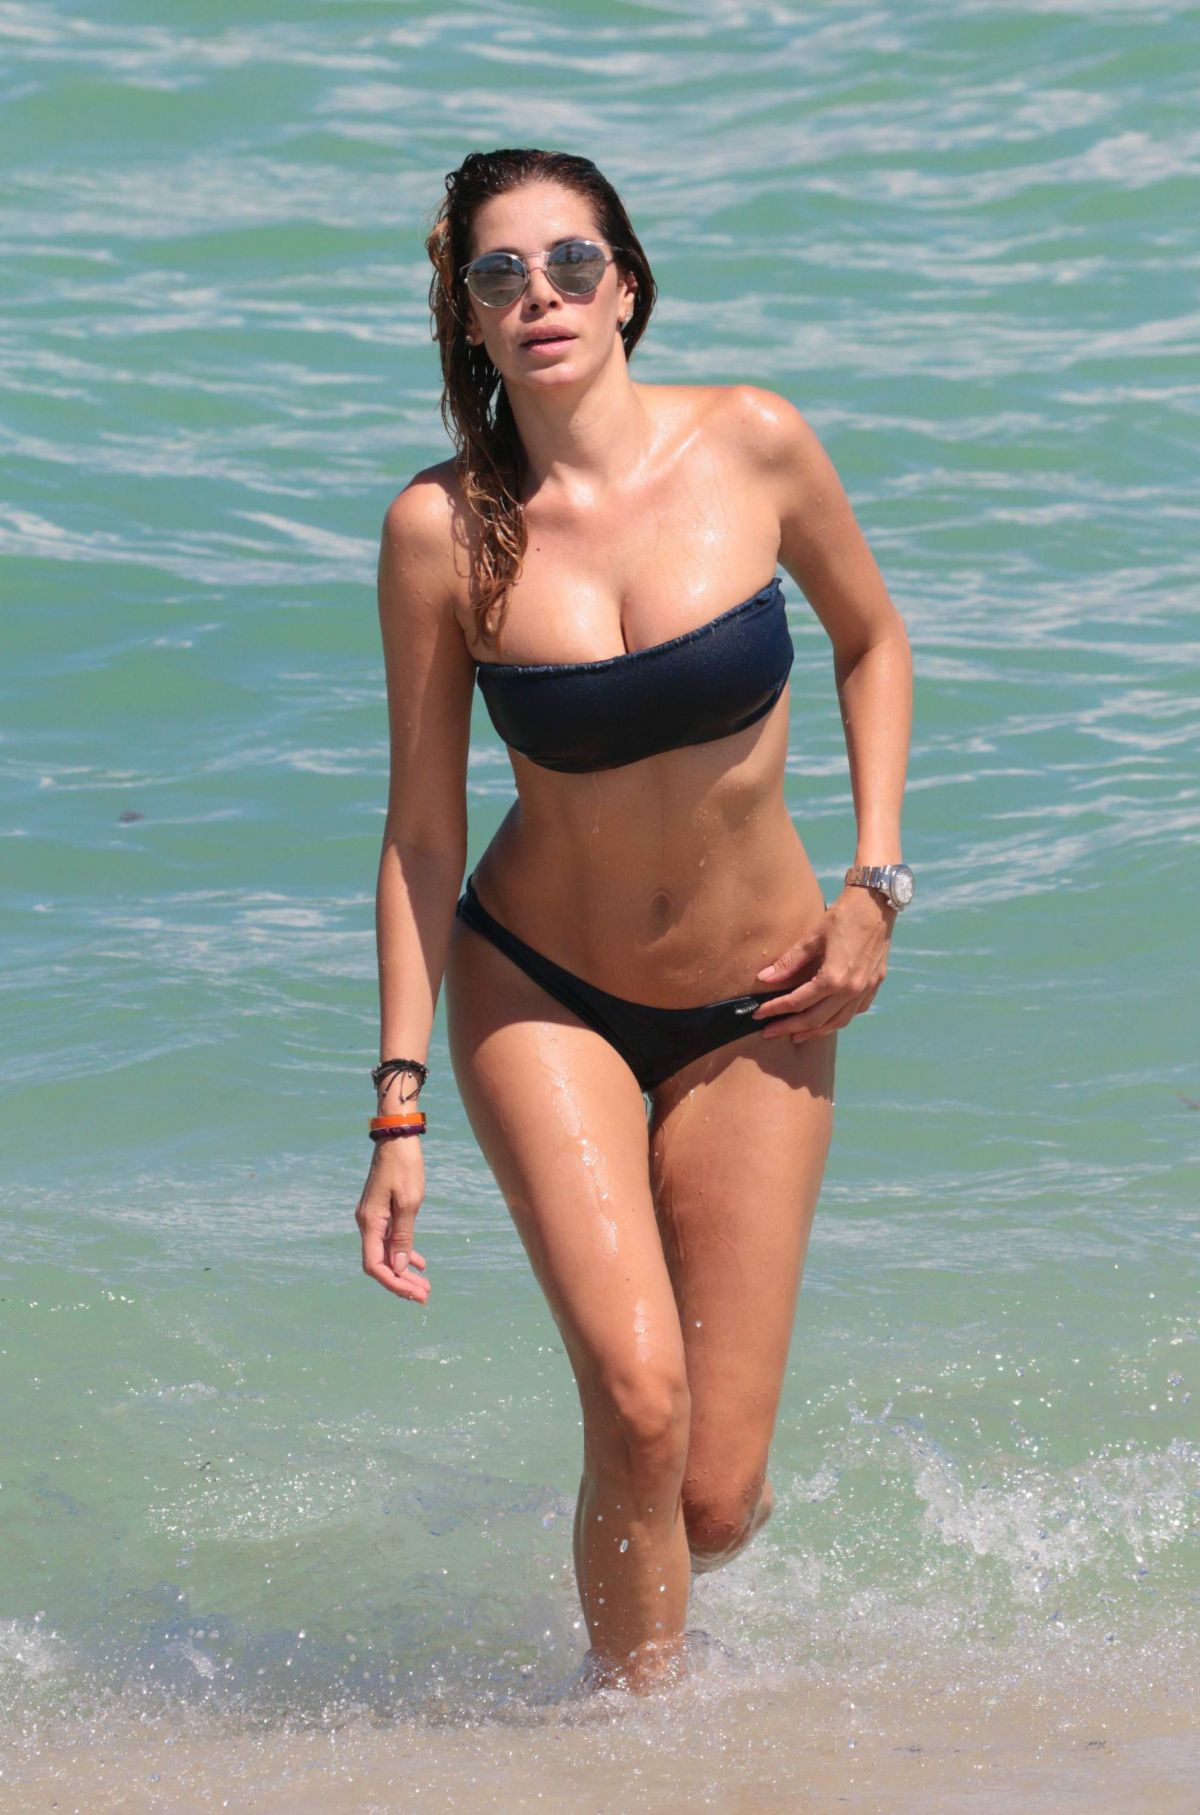 Aida Yespica Looking Busty On A Beach. 2018-2019 celebrityes photos leaks!